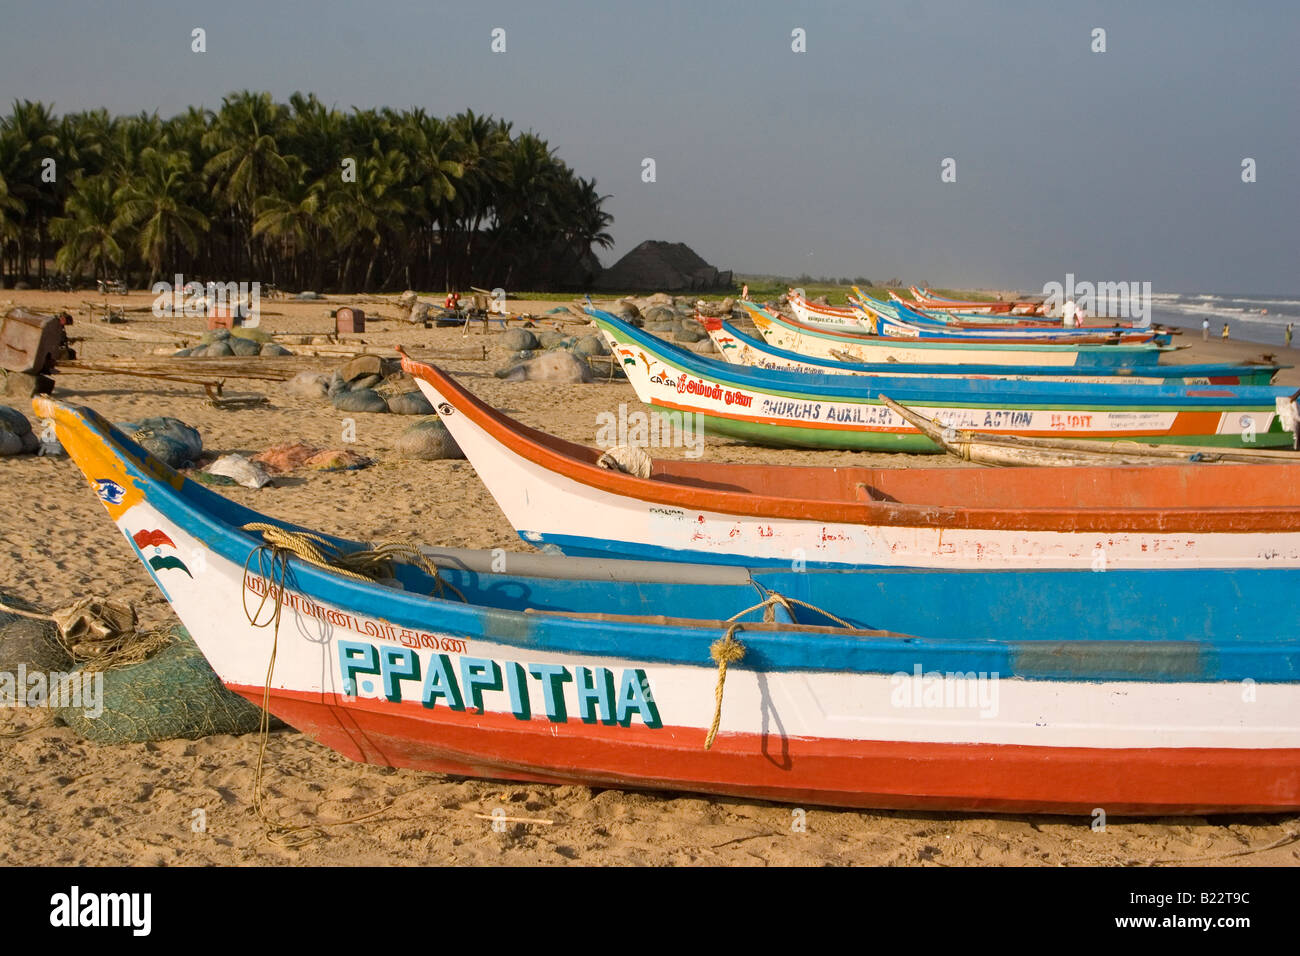 Fishing boats on the beach in Puducherry (the new name for Pondicherry) in South India. The boats are red, white - Stock Image